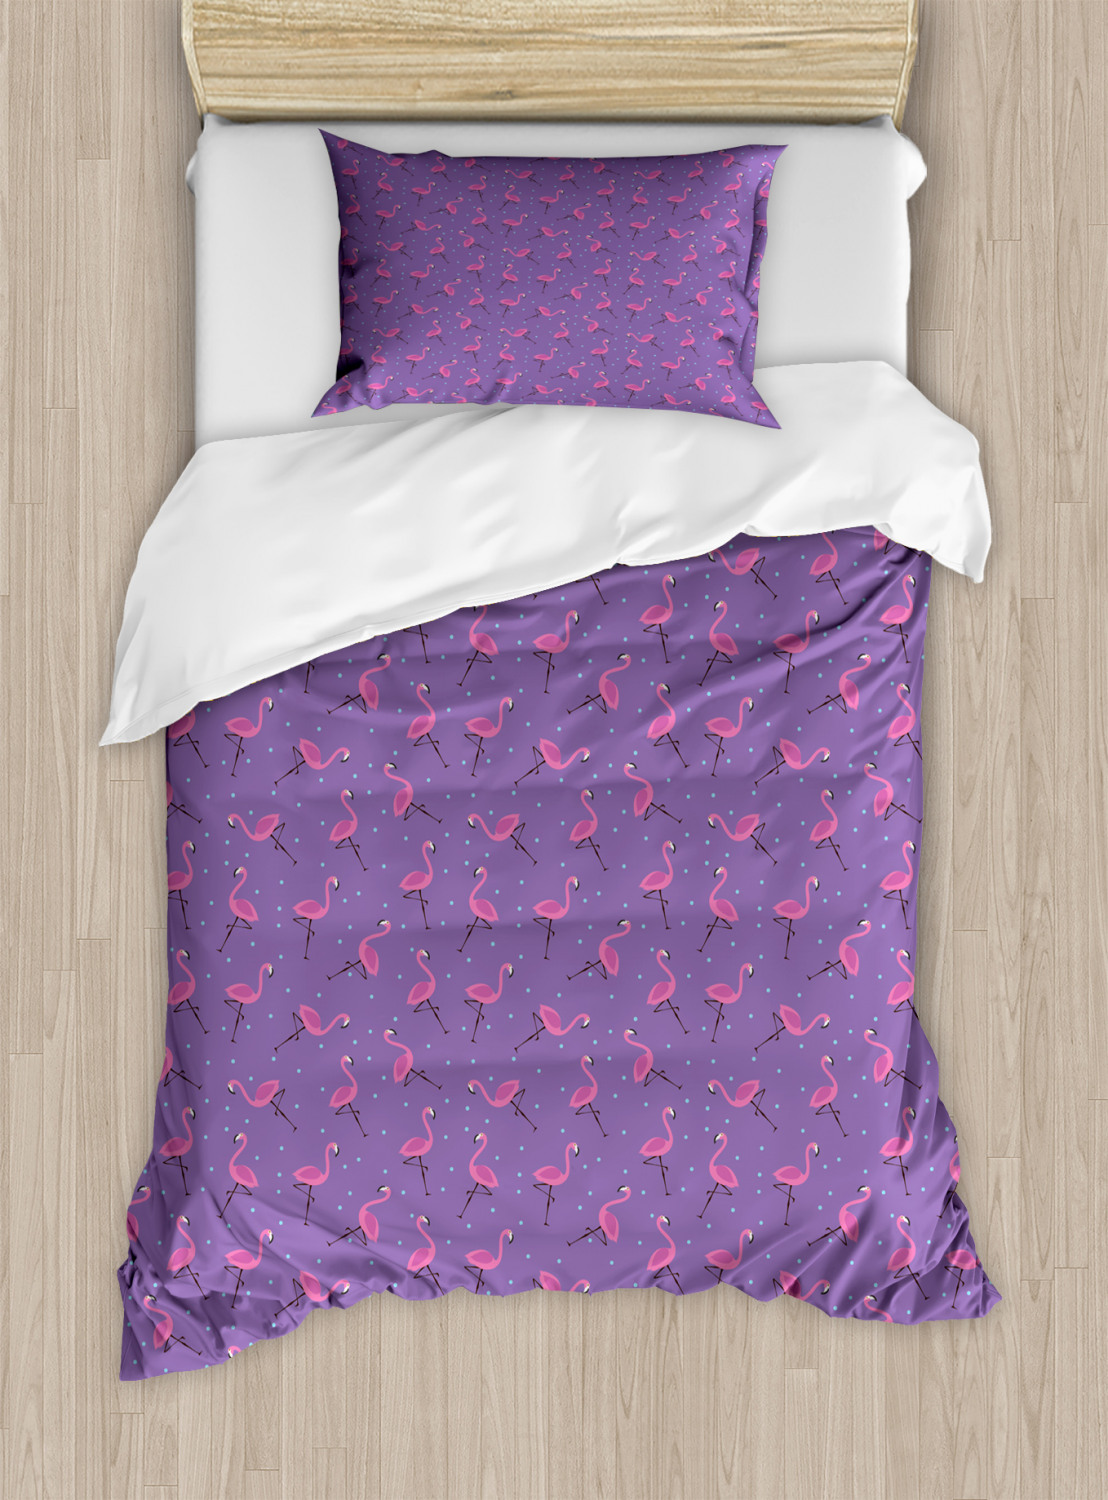 Twin Ambesonne Flamingo Fitted Sheet /& Pillow Sham Set Dotted Purple Background with Pink Exotic Birds Kids Girls Design Decorative Printed 2 Piece Bedding Decor Set Purple Magenta